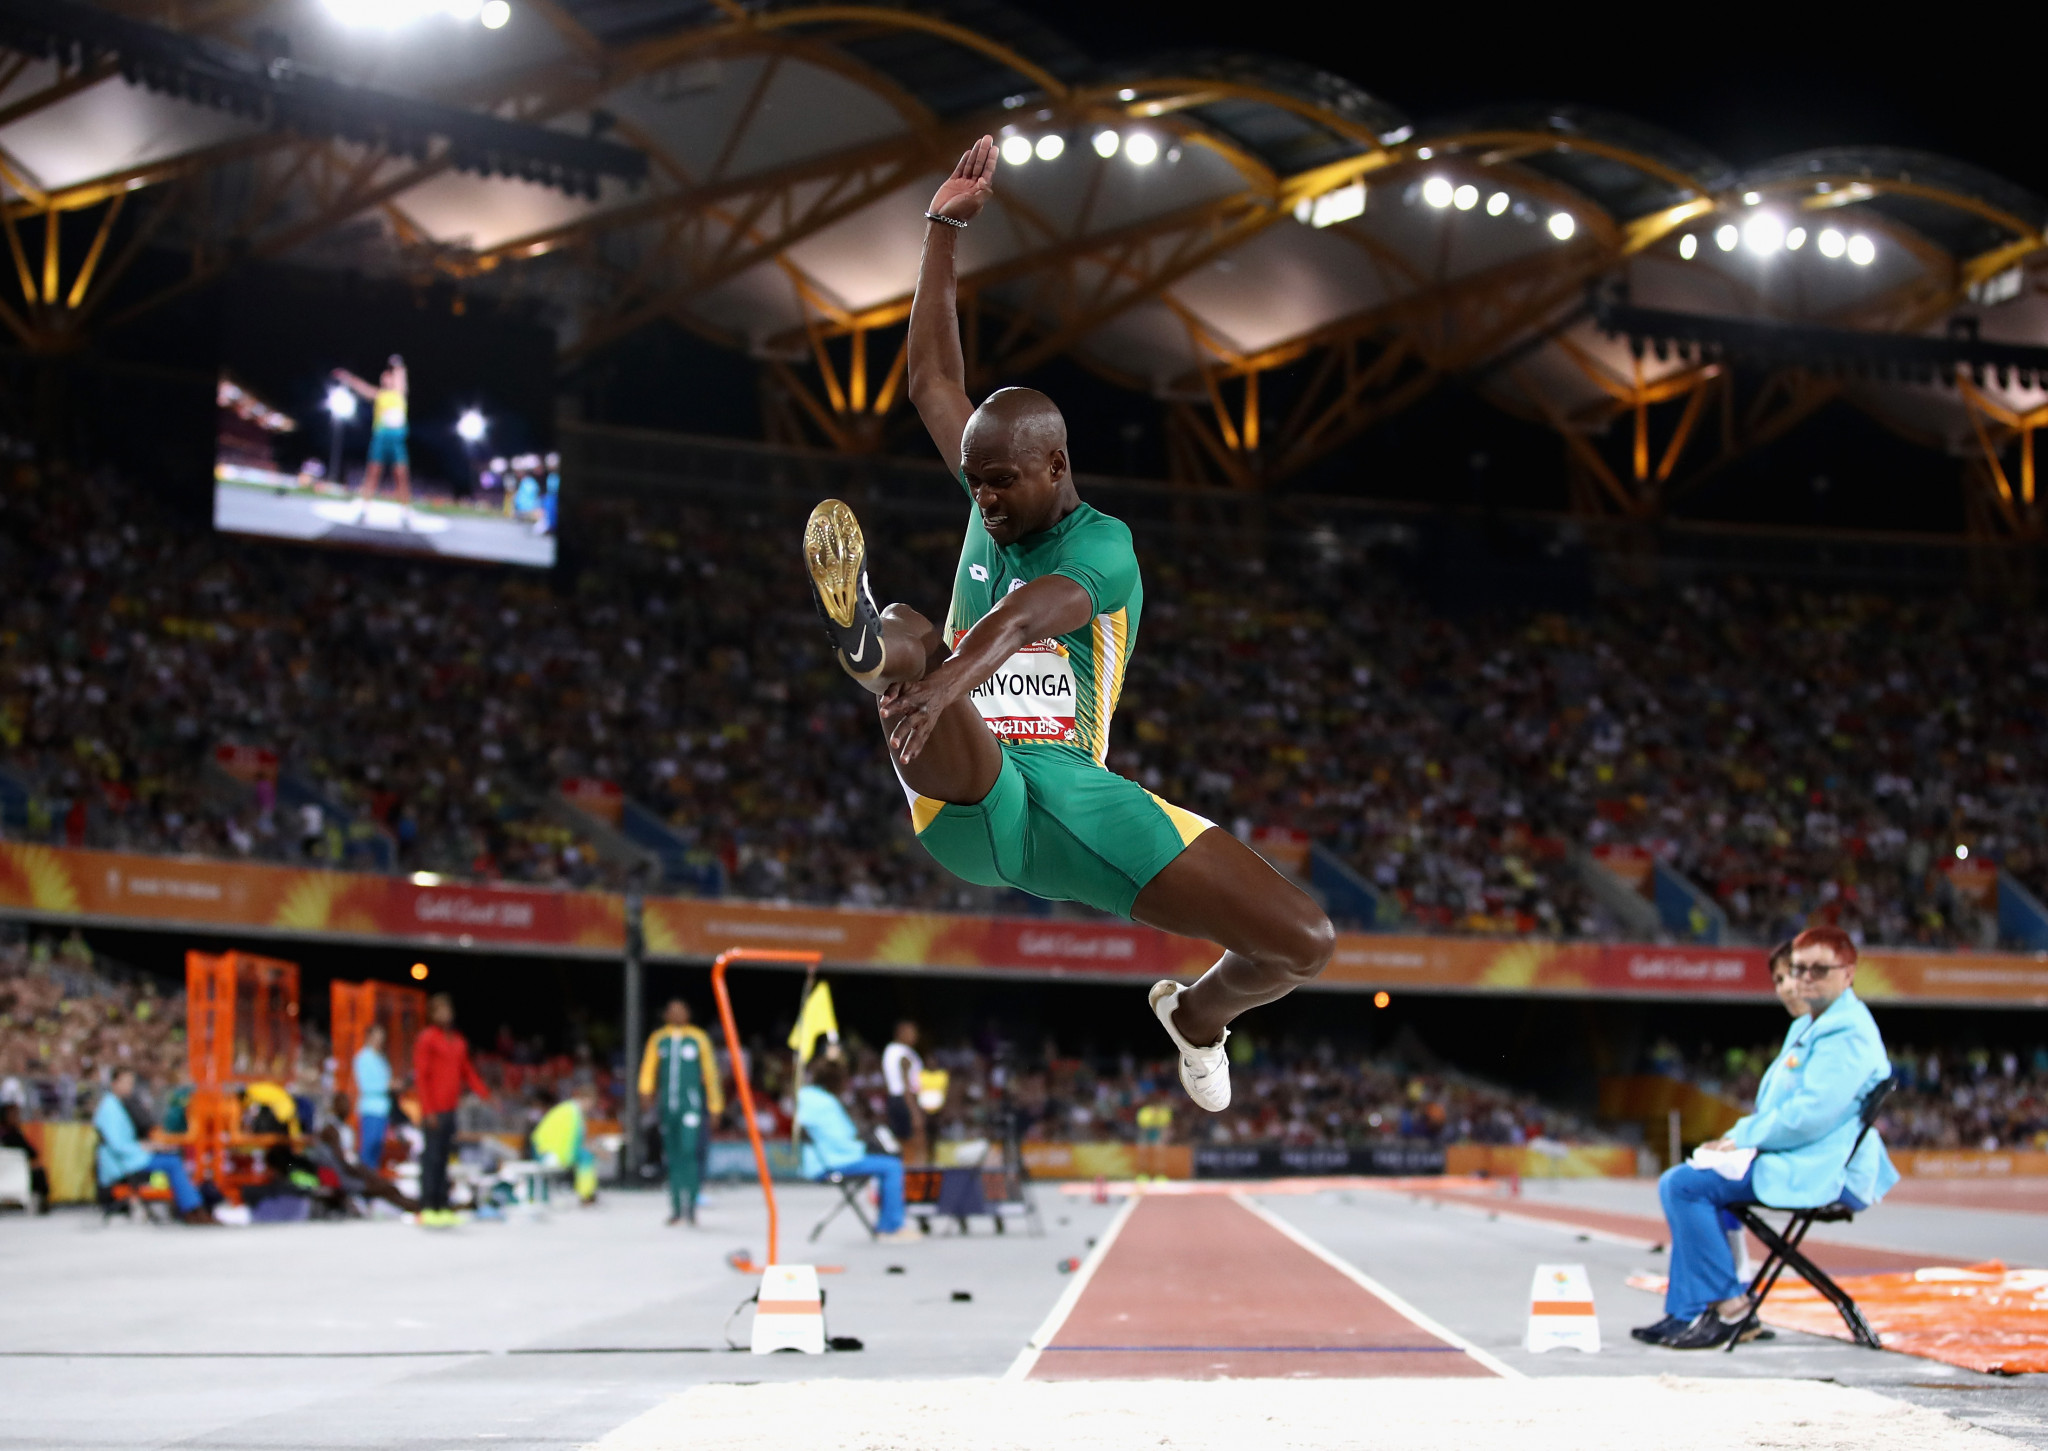 Commonwealth Games records fall as athletics action continues at Gold Coast 2018